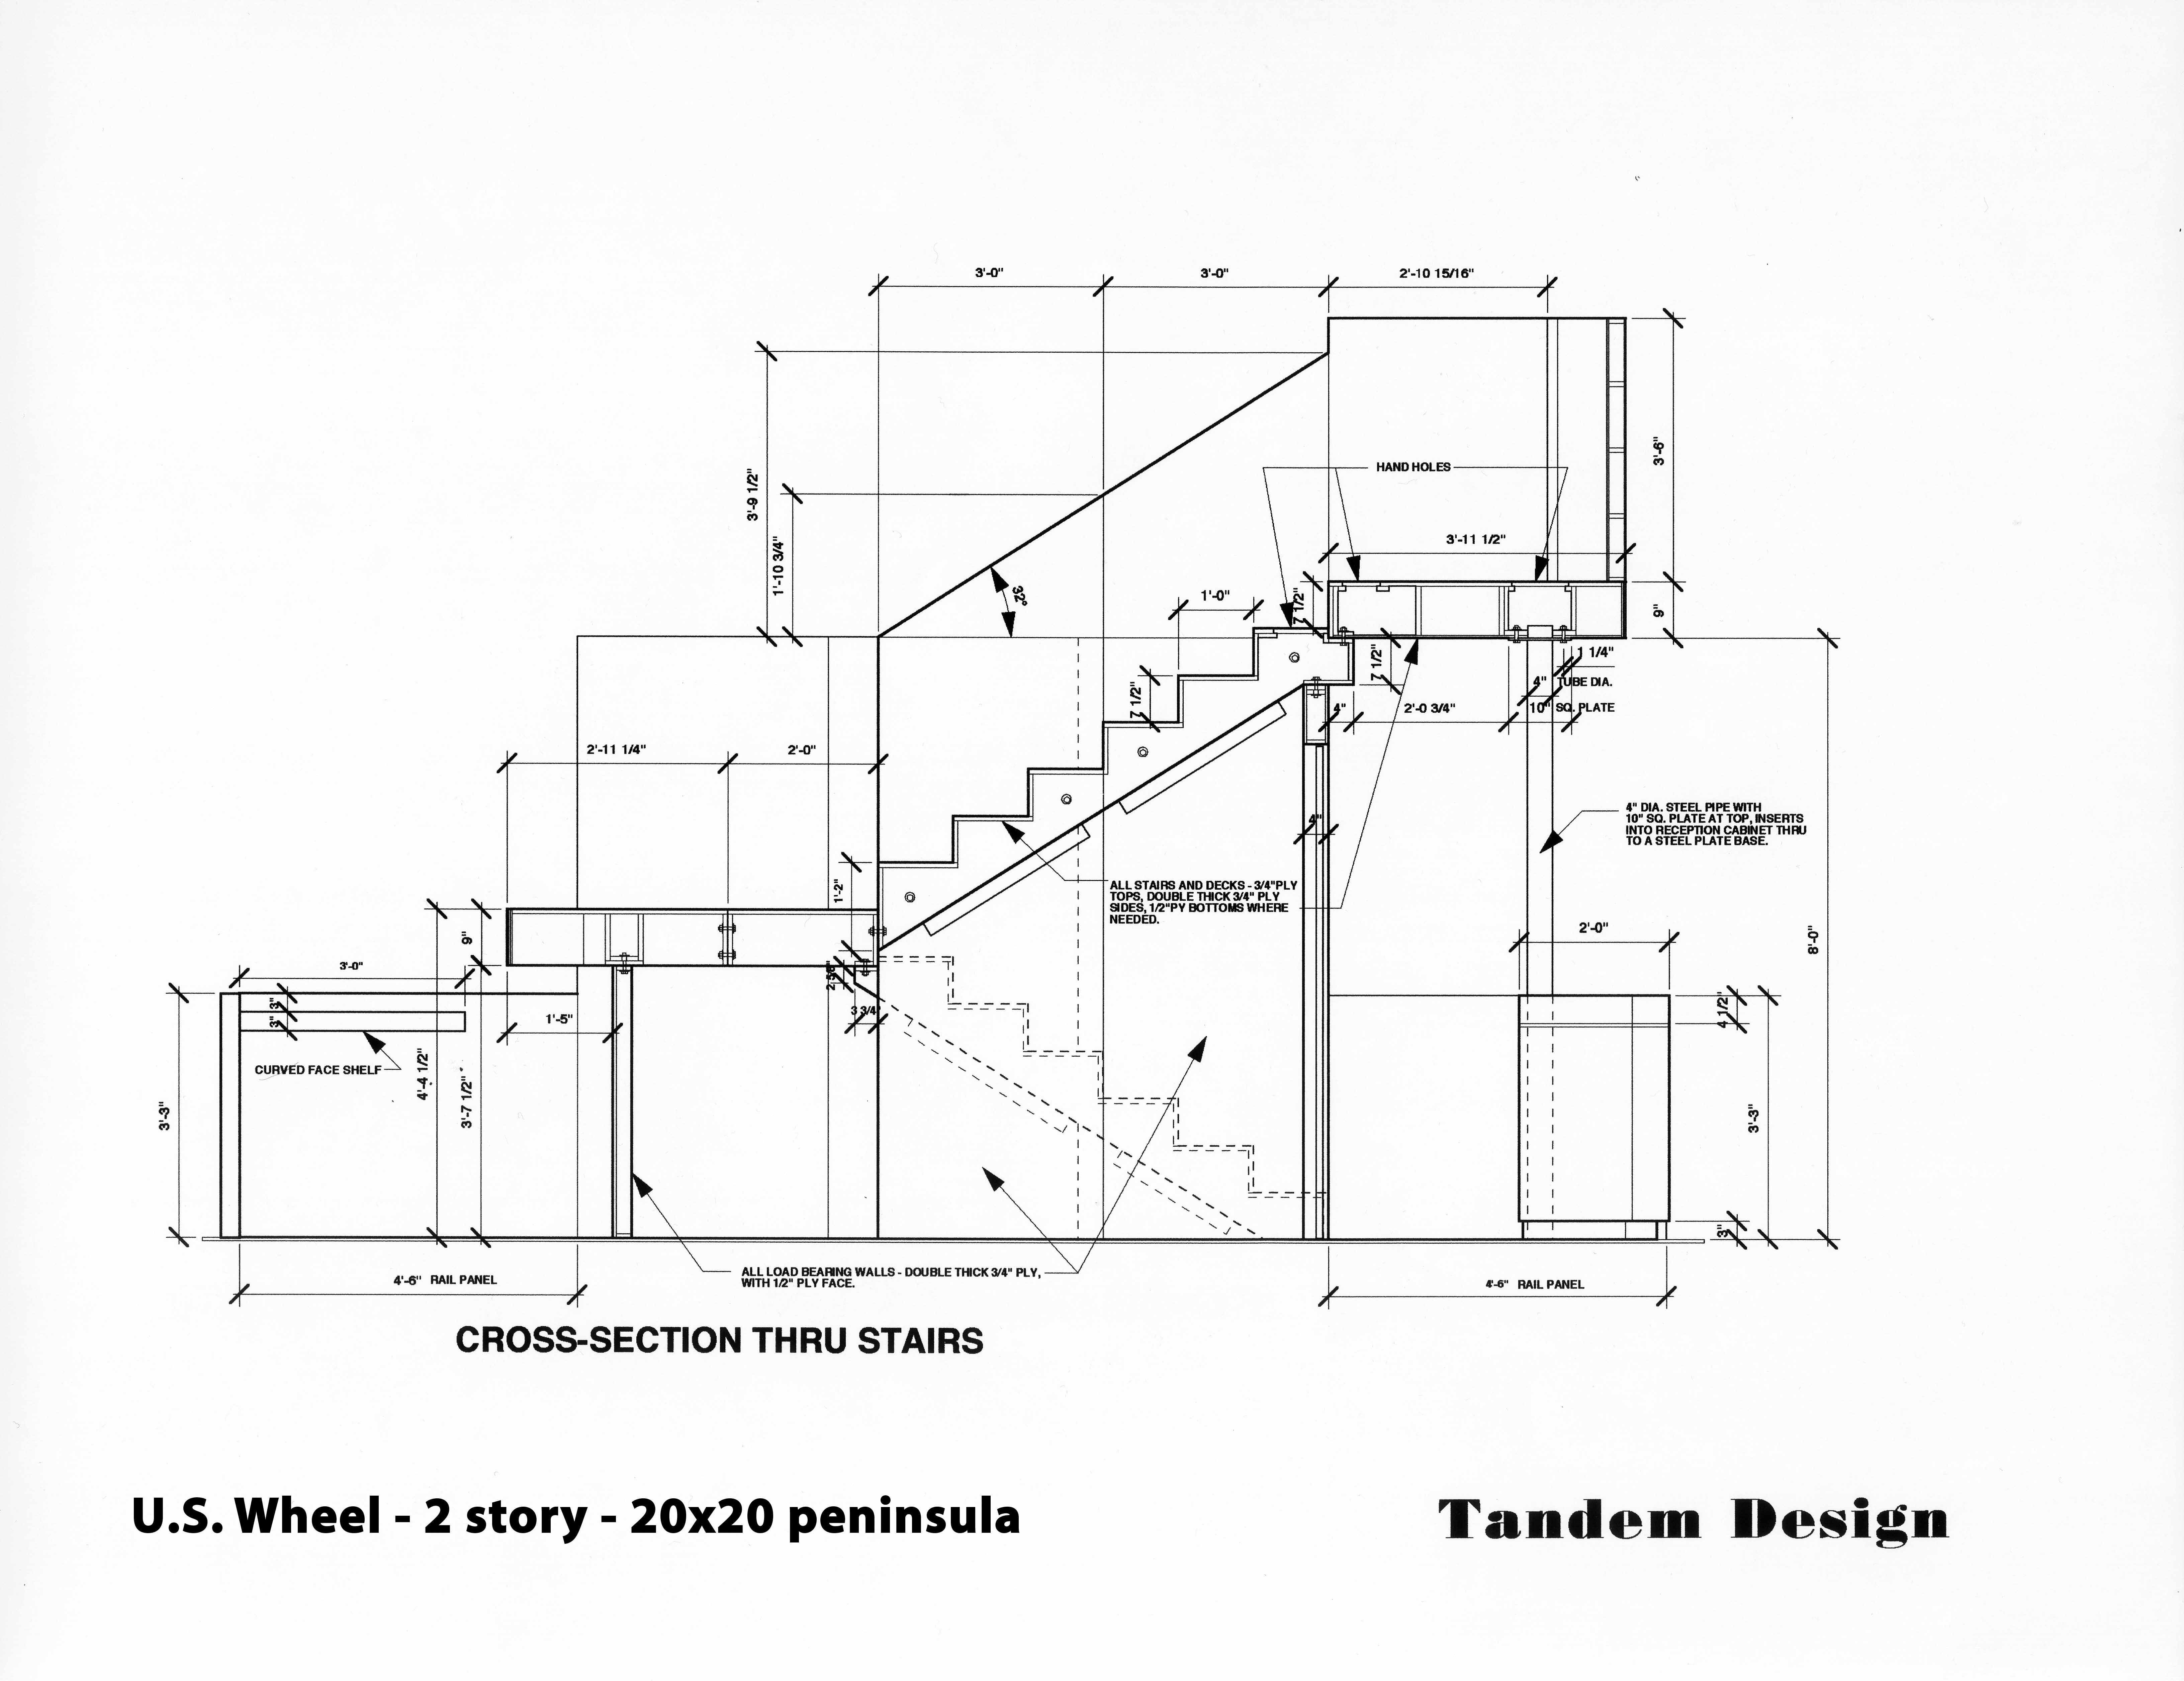 Technical Drawings By Mark Salyer At Coroflot